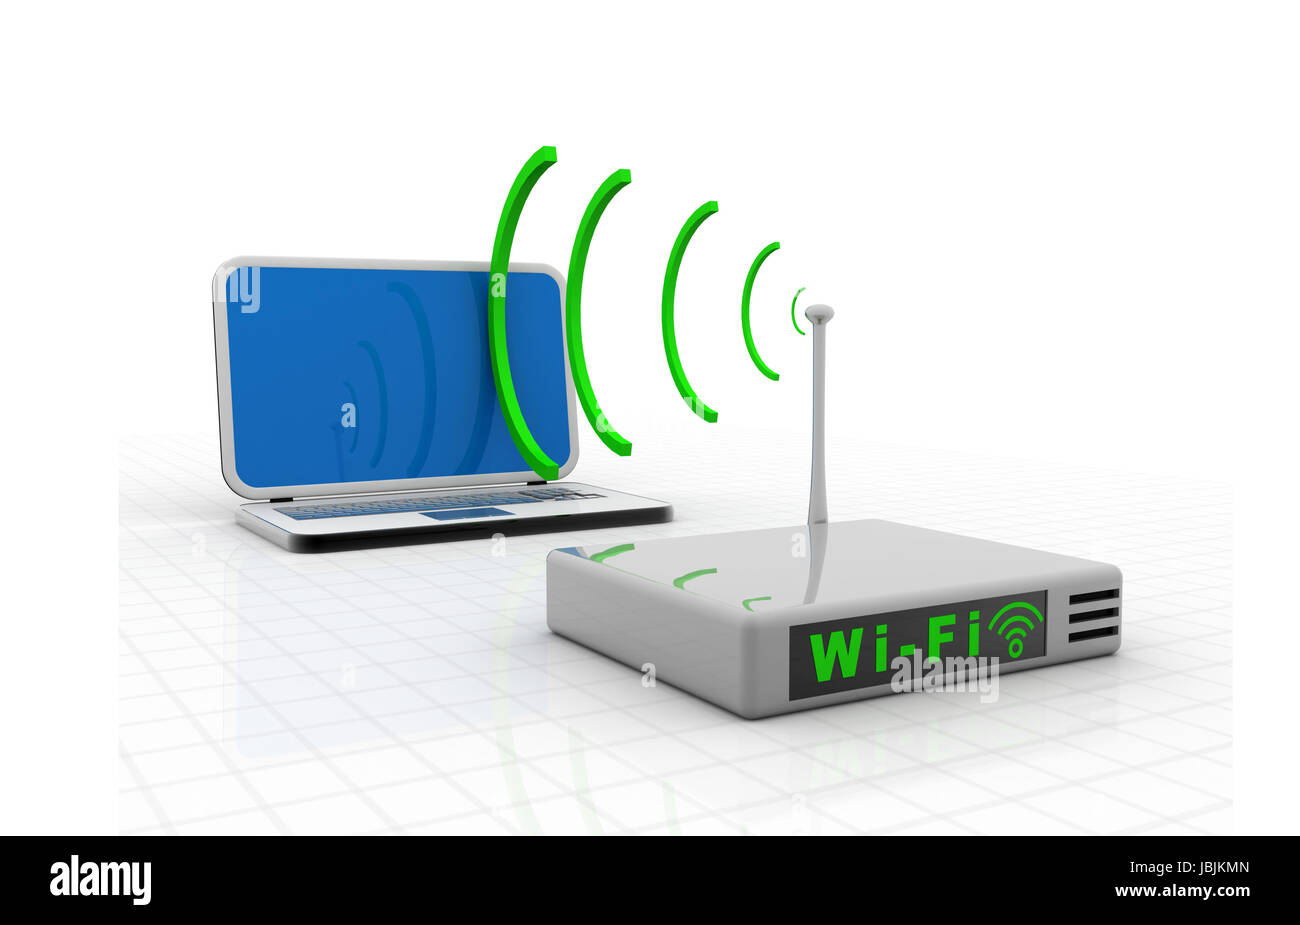 hight resolution of home wireless network diagram stock photos u0026 home wireless networkhome wifi network internet via router